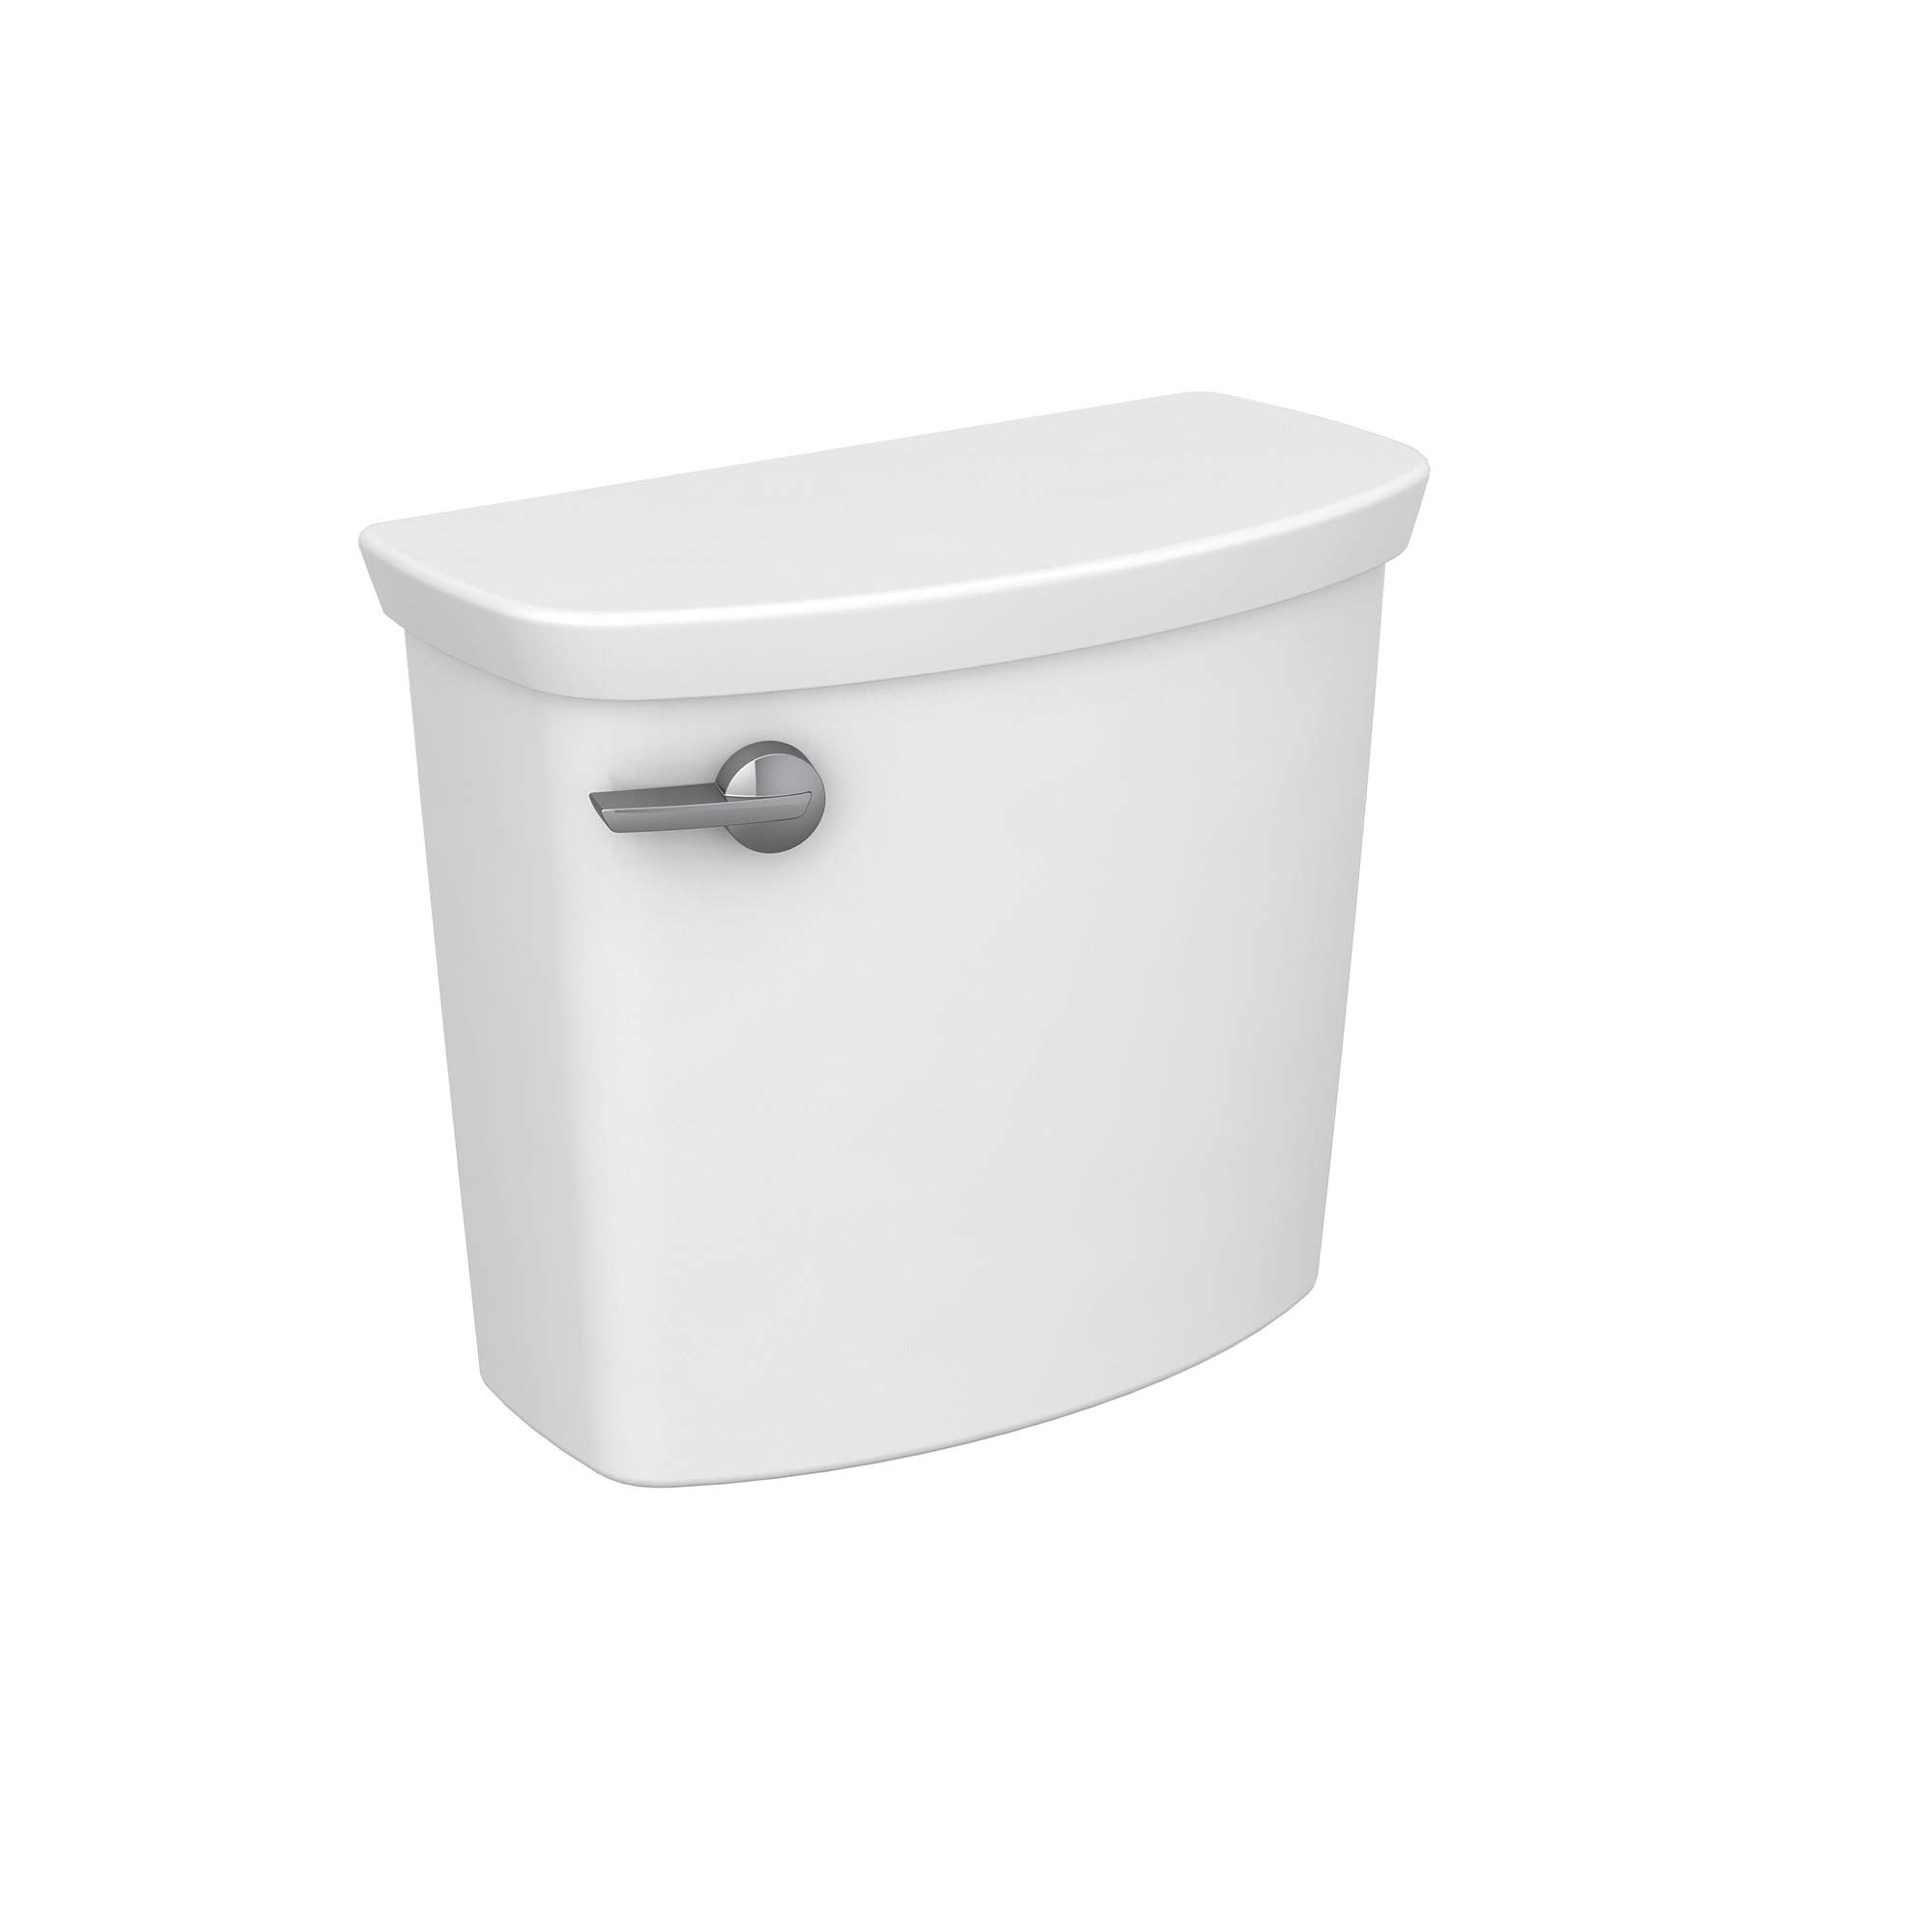 American Standard 4385A107.020 Glenwall VorMax Toilet Tank with Left-Hand Trip Lever White by American Standard (Image #2)